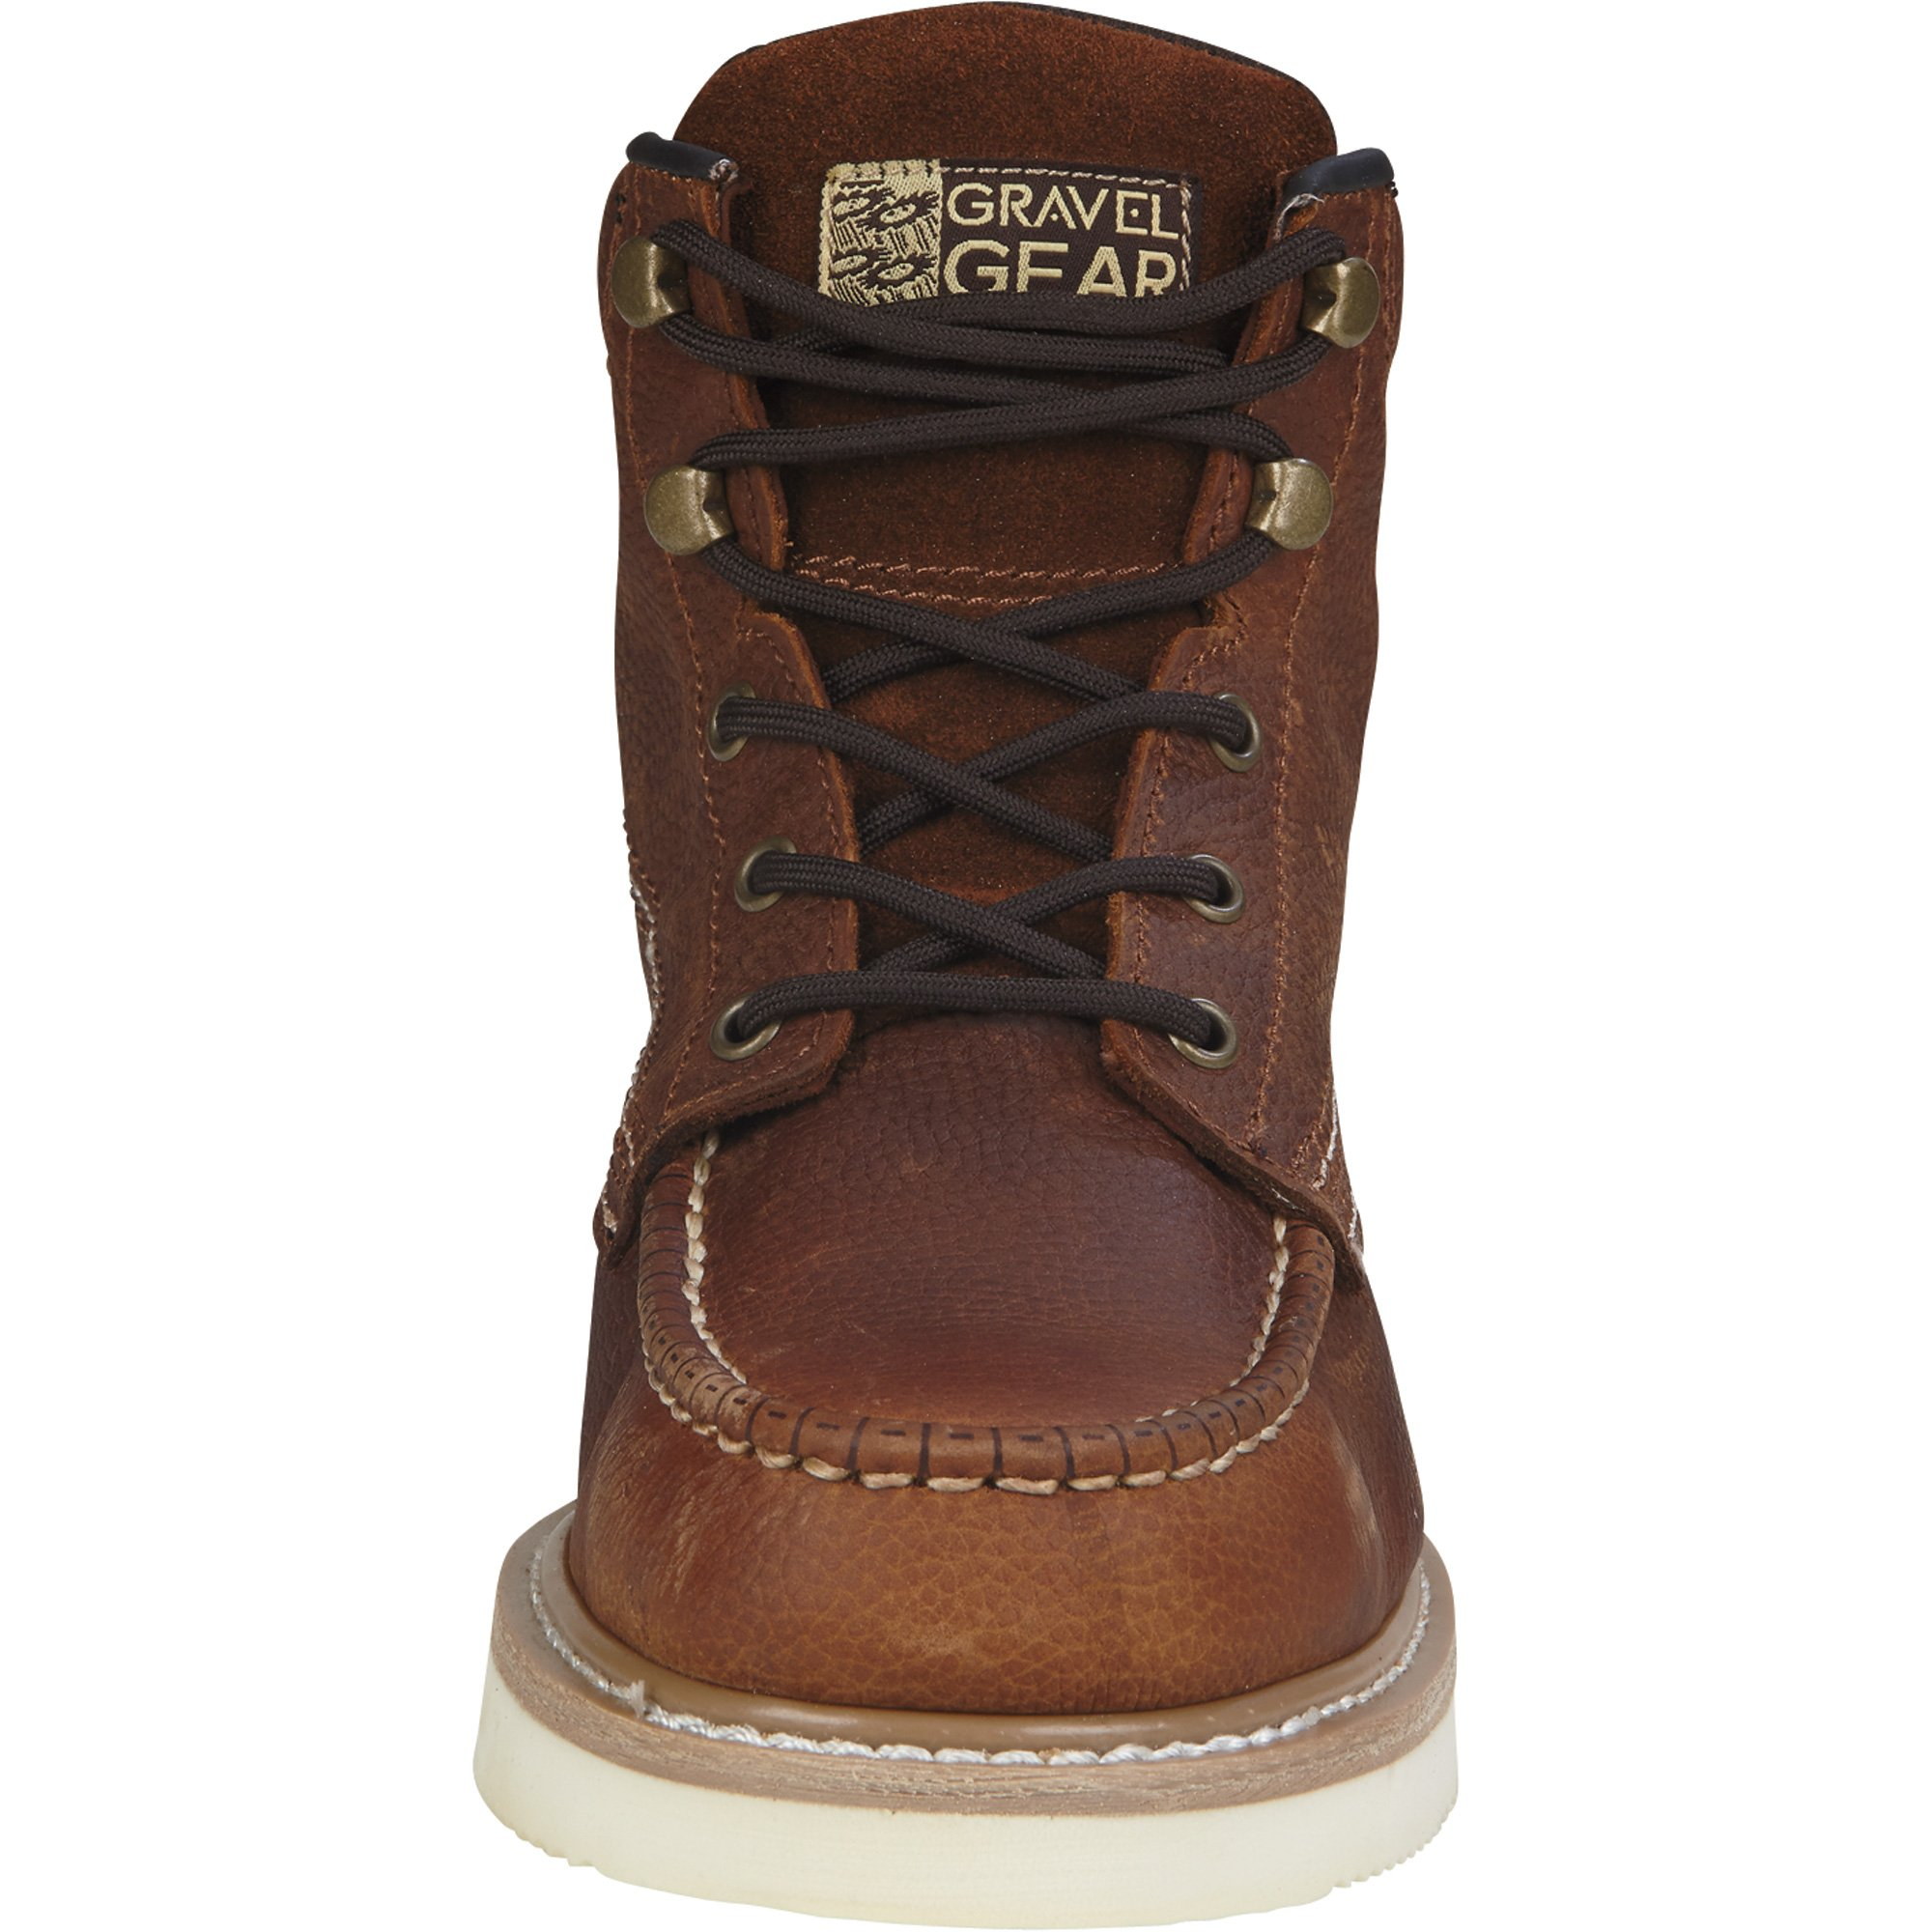 Gravel Gear 6in. Moc Toe Wedge Boot (10.5) by Gravel Gear (Image #6)